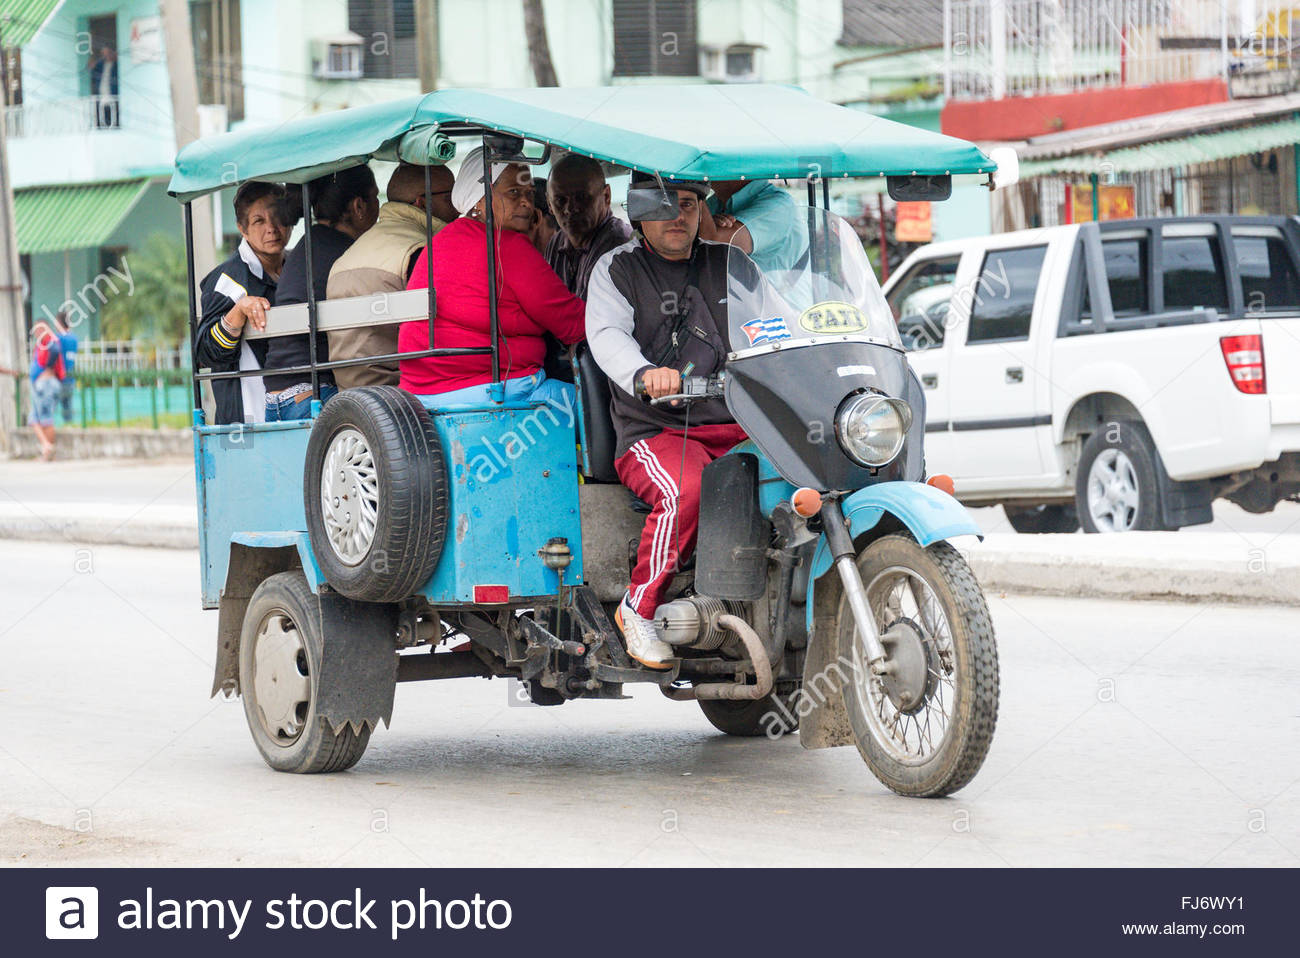 Motoneta taxi  carrying a lot of people, in his rustic and homemade vehicle, made from spare parts from other motor - Stock Image